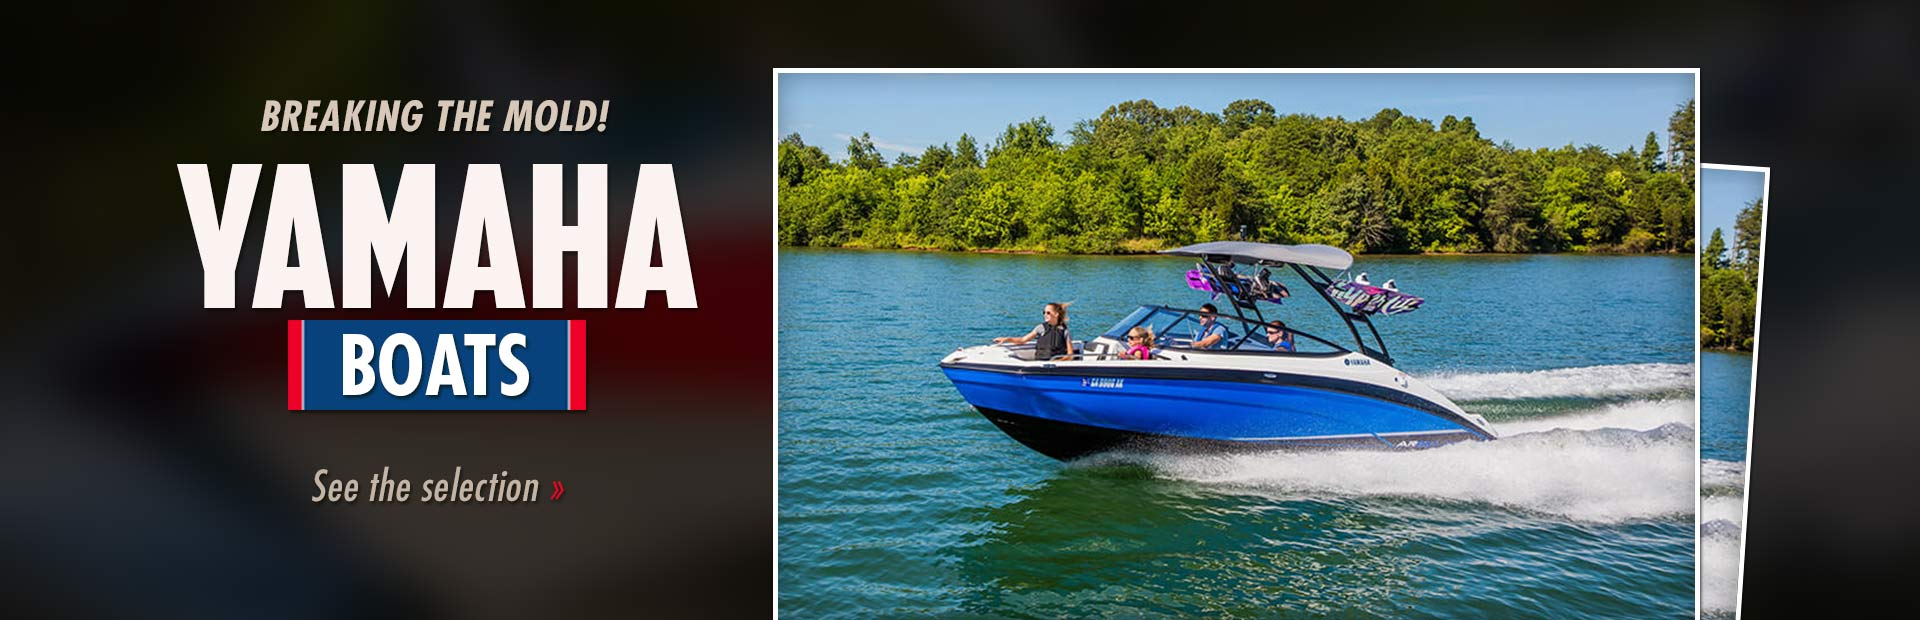 Yamaha Boats: Click here to view the showcase!